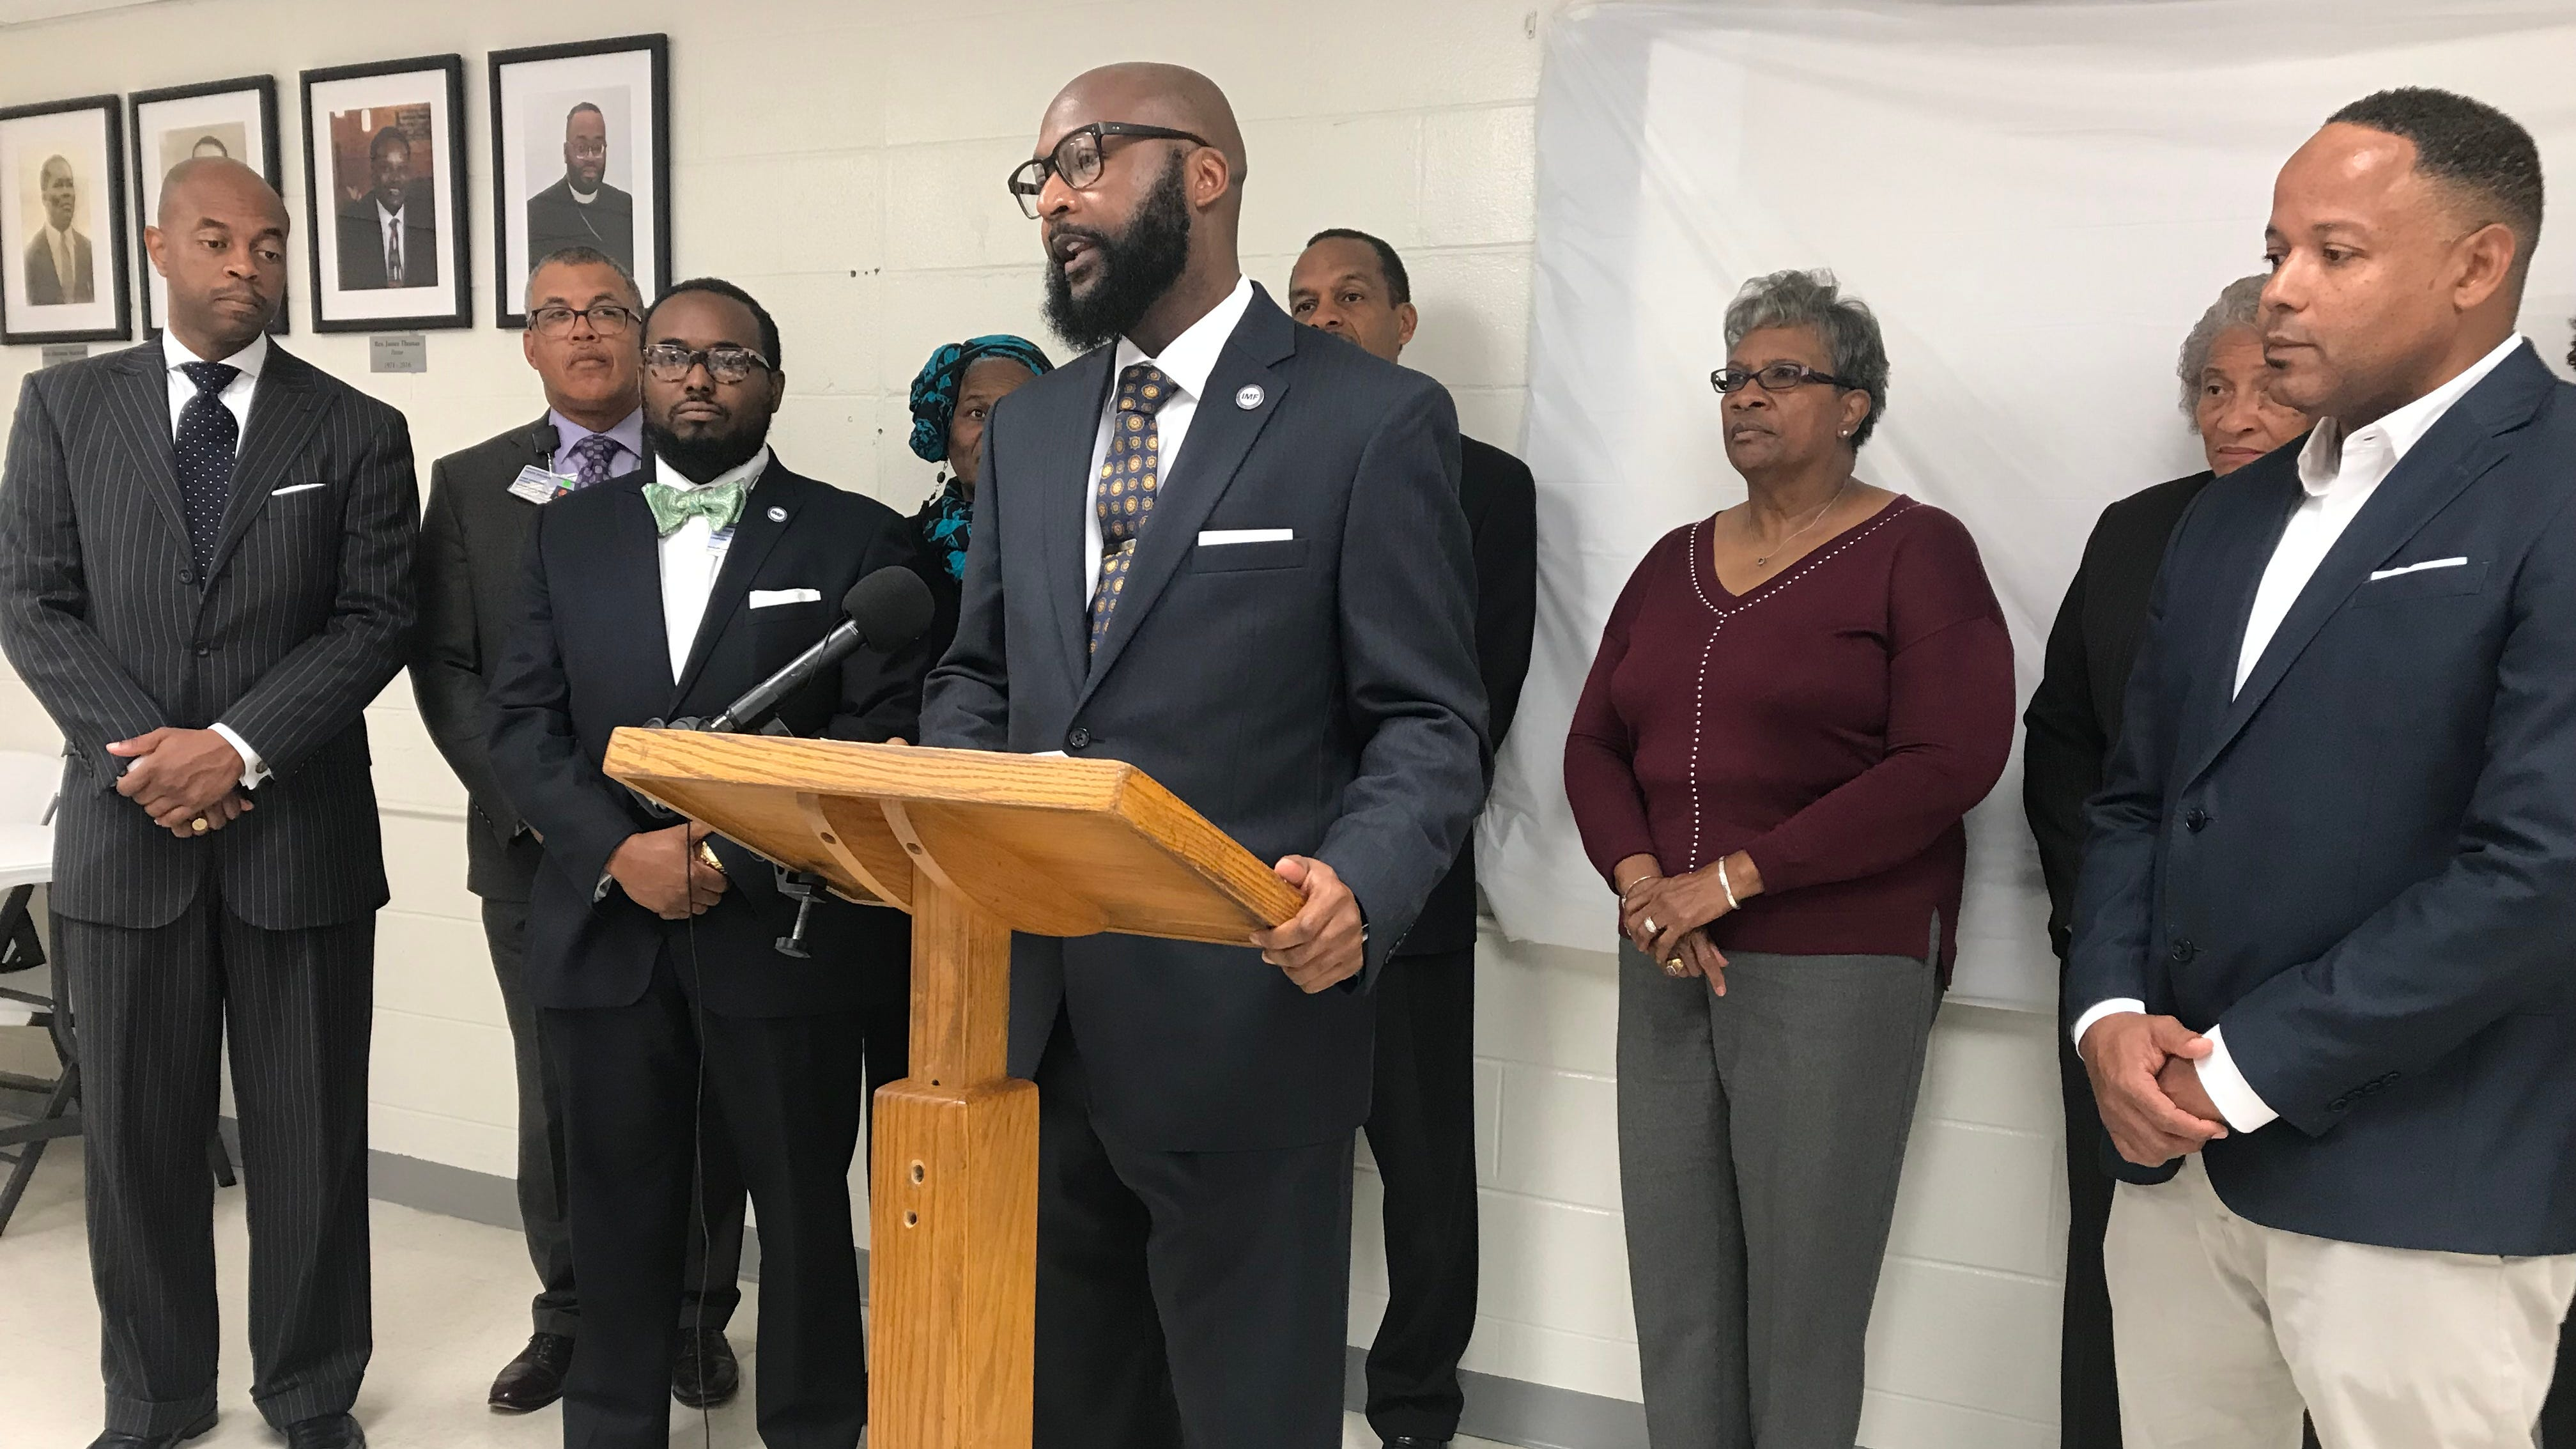 Ministry group, black churches getting out the vote for midterms, police oversight amendment